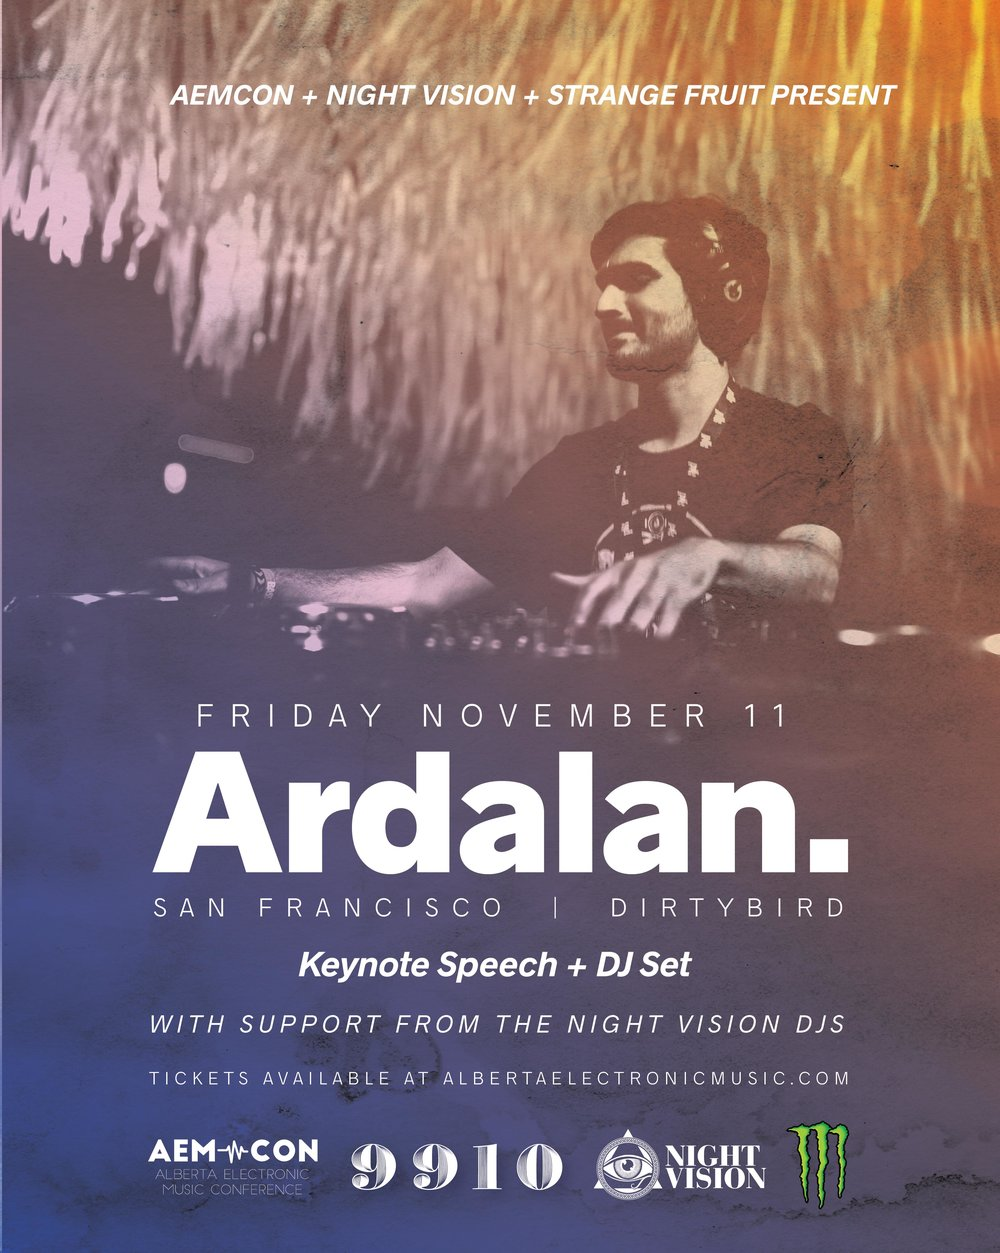 Ardalan at 9910